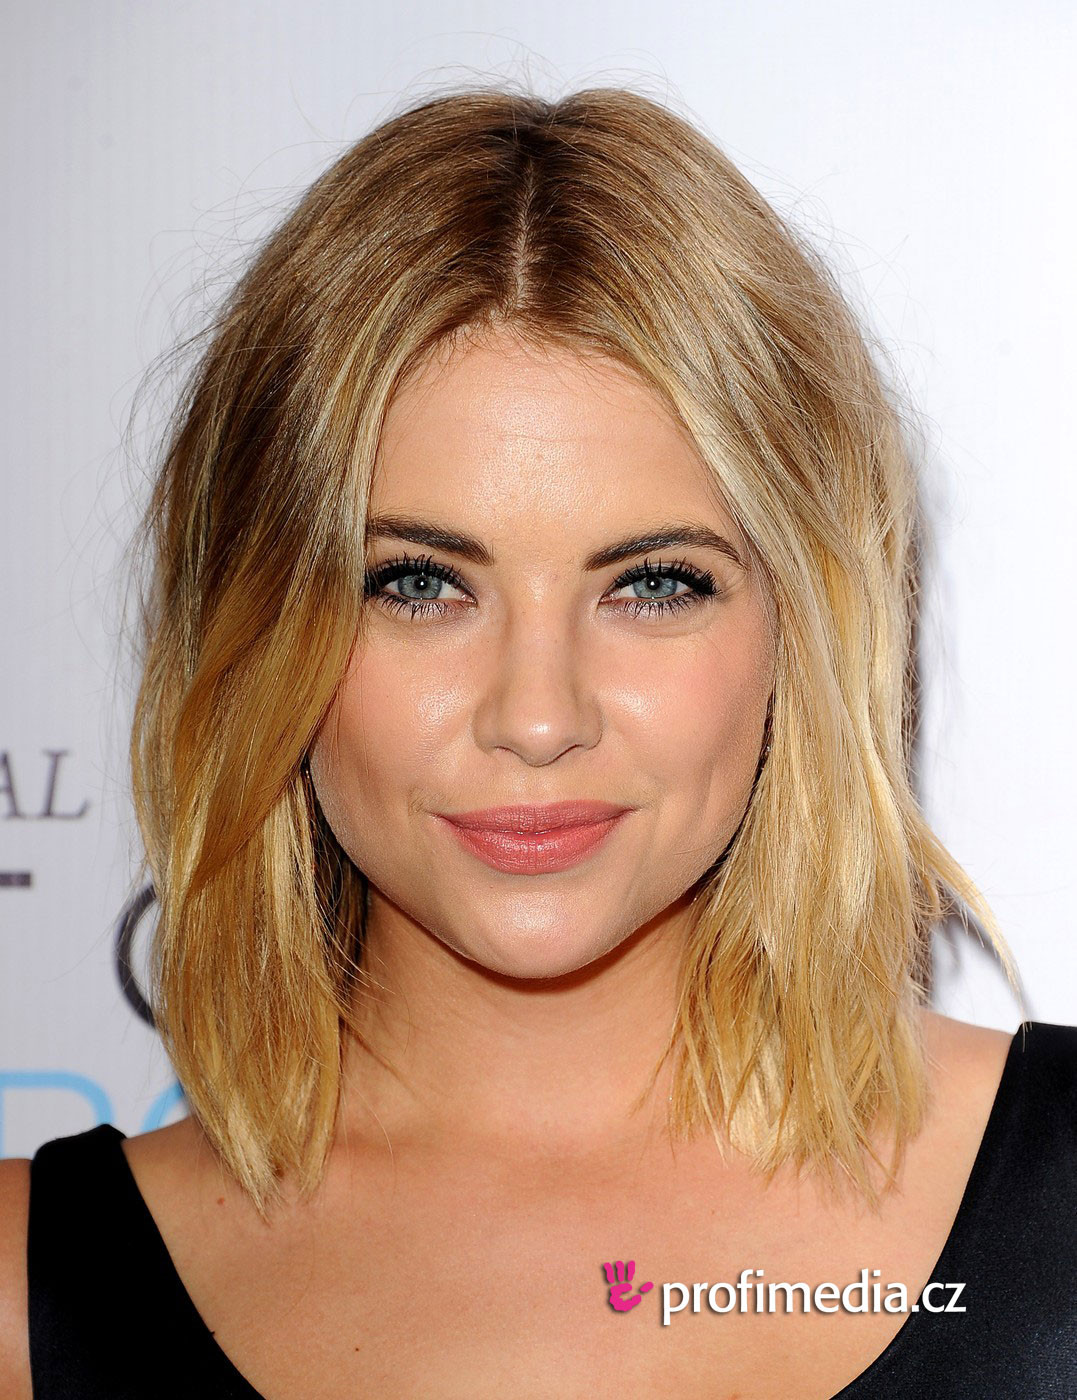 Frisuren Ausprobieren  Ashley Benson frisur zum Ausprobieren in eFrisuren